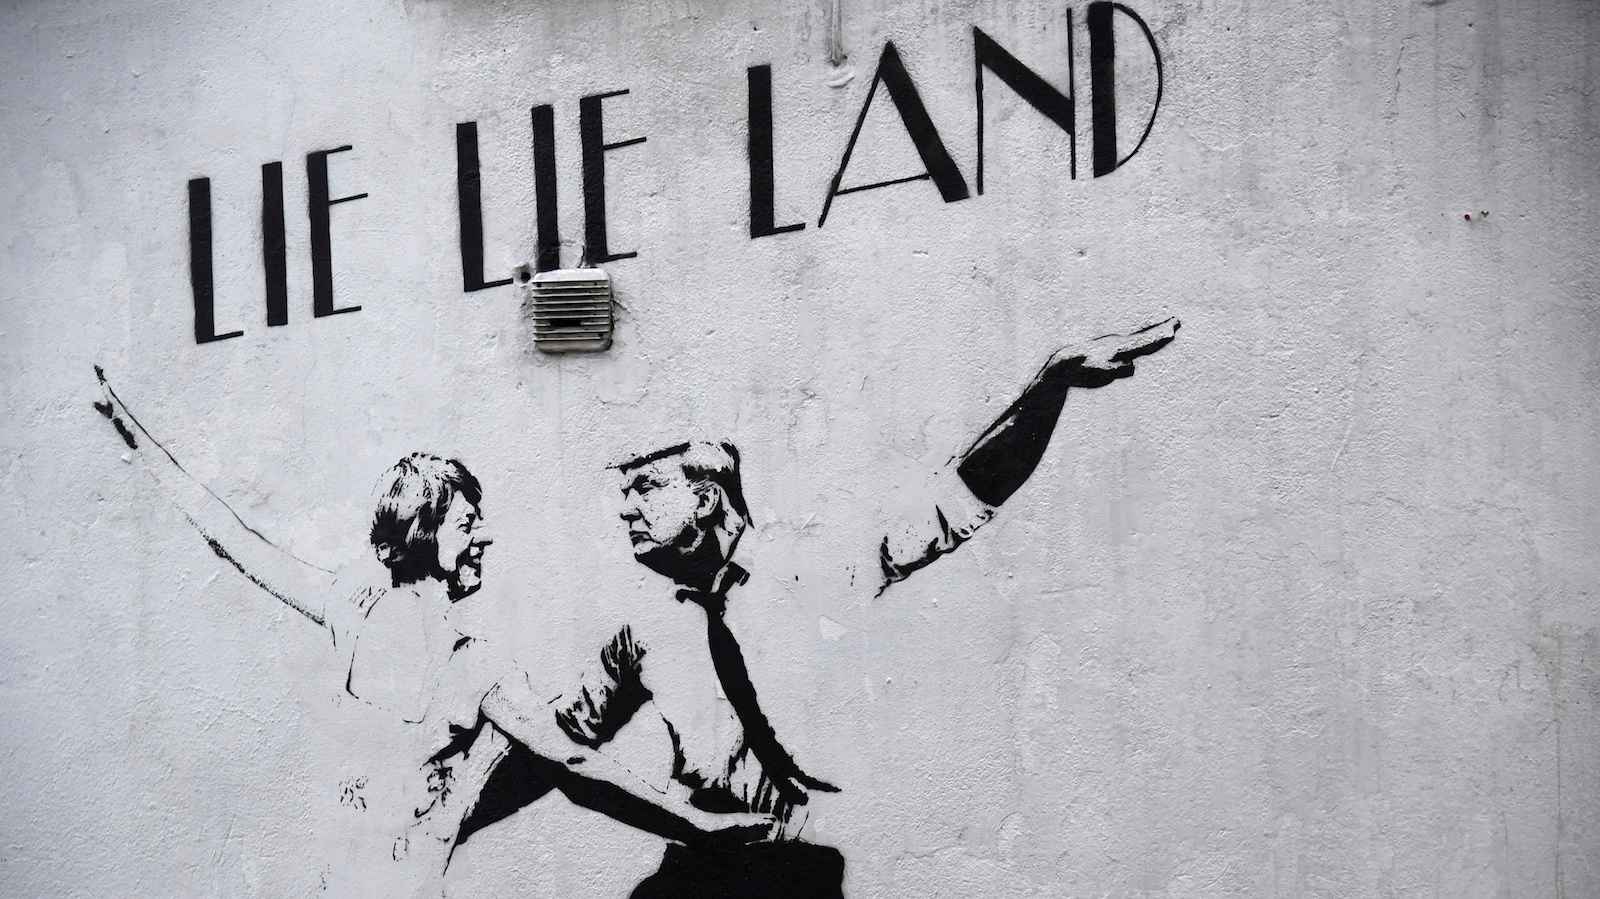 "A mural depicting U.S. President Trump dancing with British Prime Minister May, painted in a style similar to the cinema poster for the film musical ""La La Land"" is seen on a wall in London"